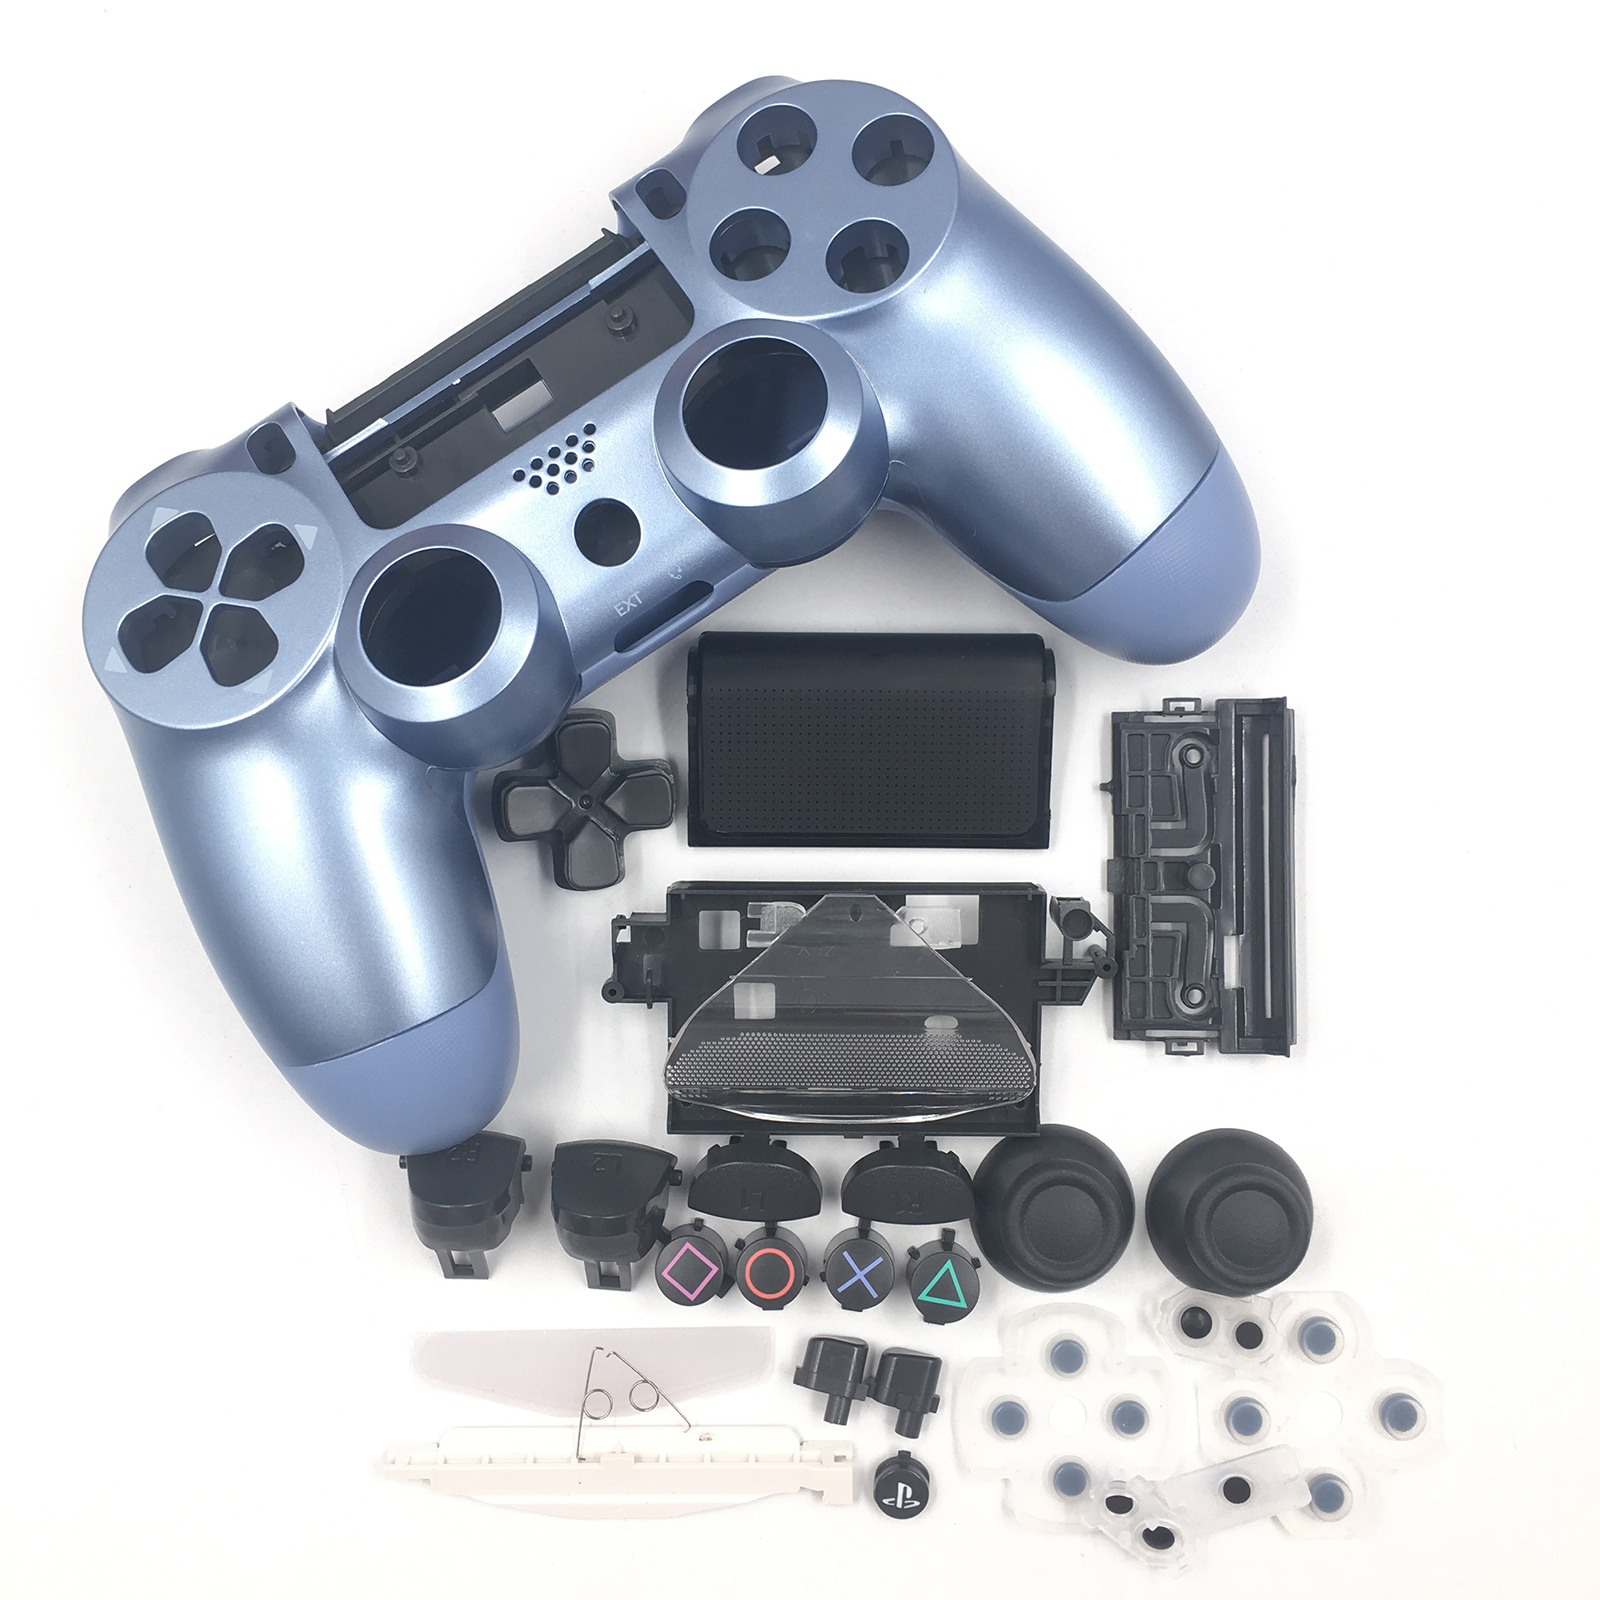 Replacement Housing Shell <font><b>Case</b></font> Buttons for Sony Playstation <font><b>PS4</b></font> Slim 4 Controller Spare Parts Set DIY <font><b>Mod</b></font> Kit image